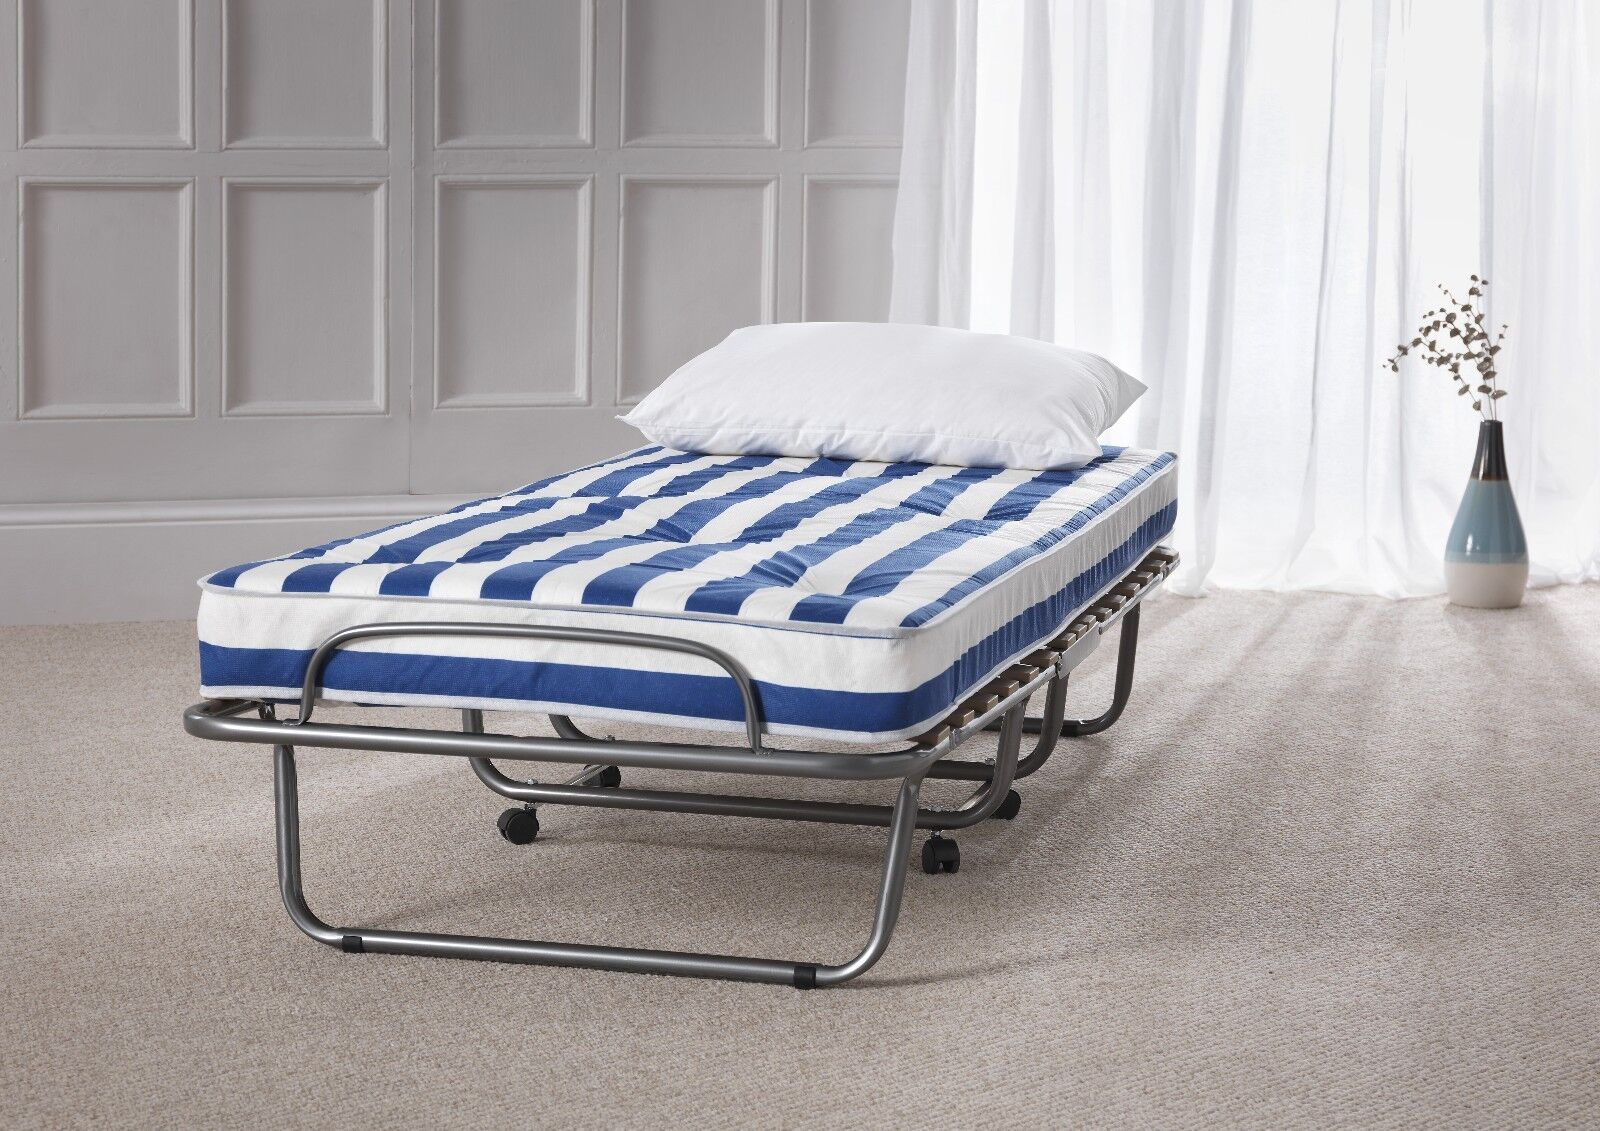 luthor folding guest bed or spare room foldaway bed with coil spring mattress - Fold Away Bed